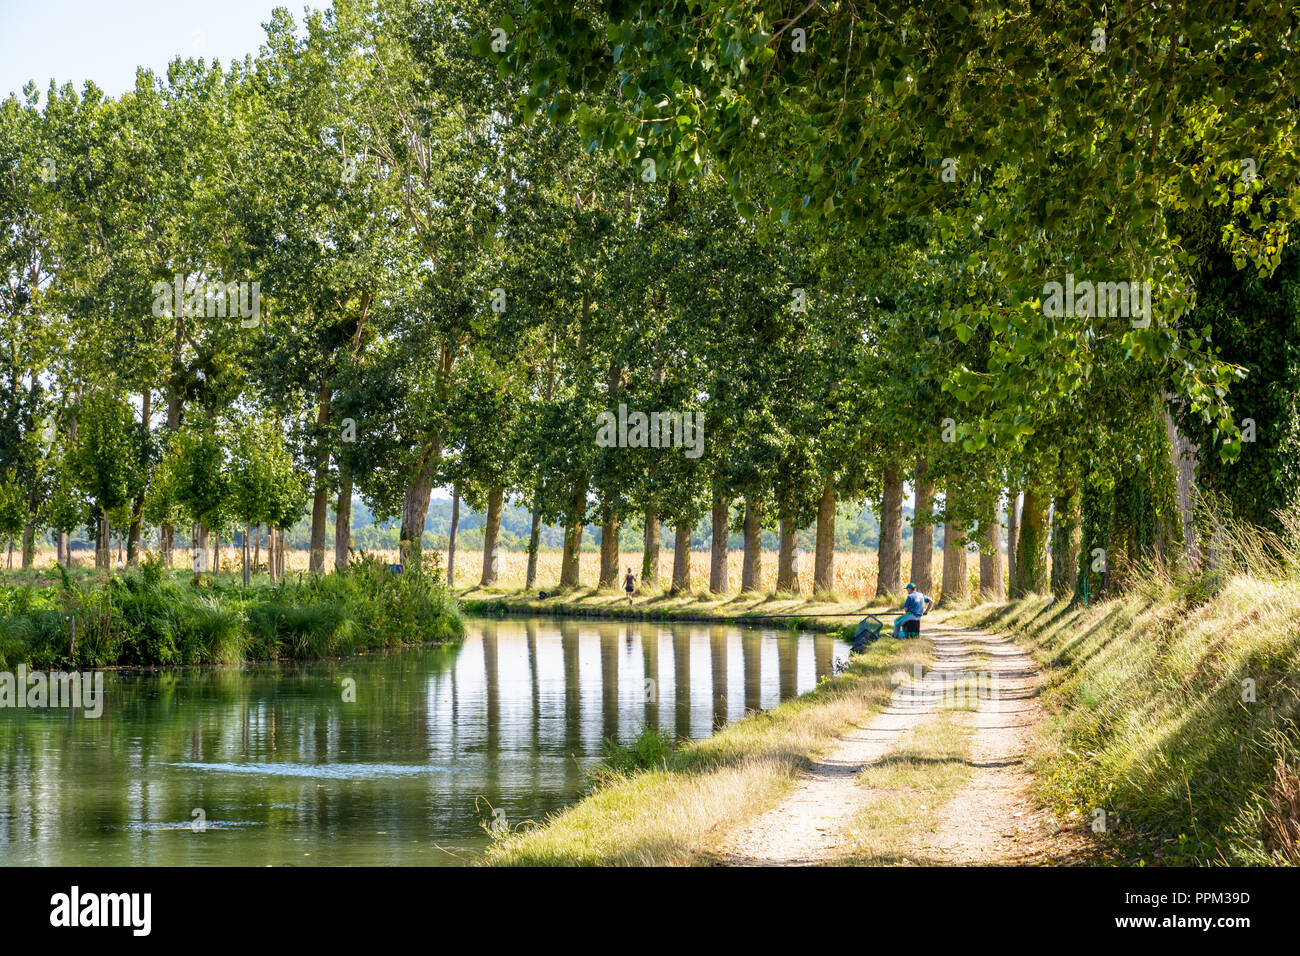 Typical bucolic scene on the tree lined towpath alongside the canal of the river Marne in France with a man fishing in the still waters. - Stock Image